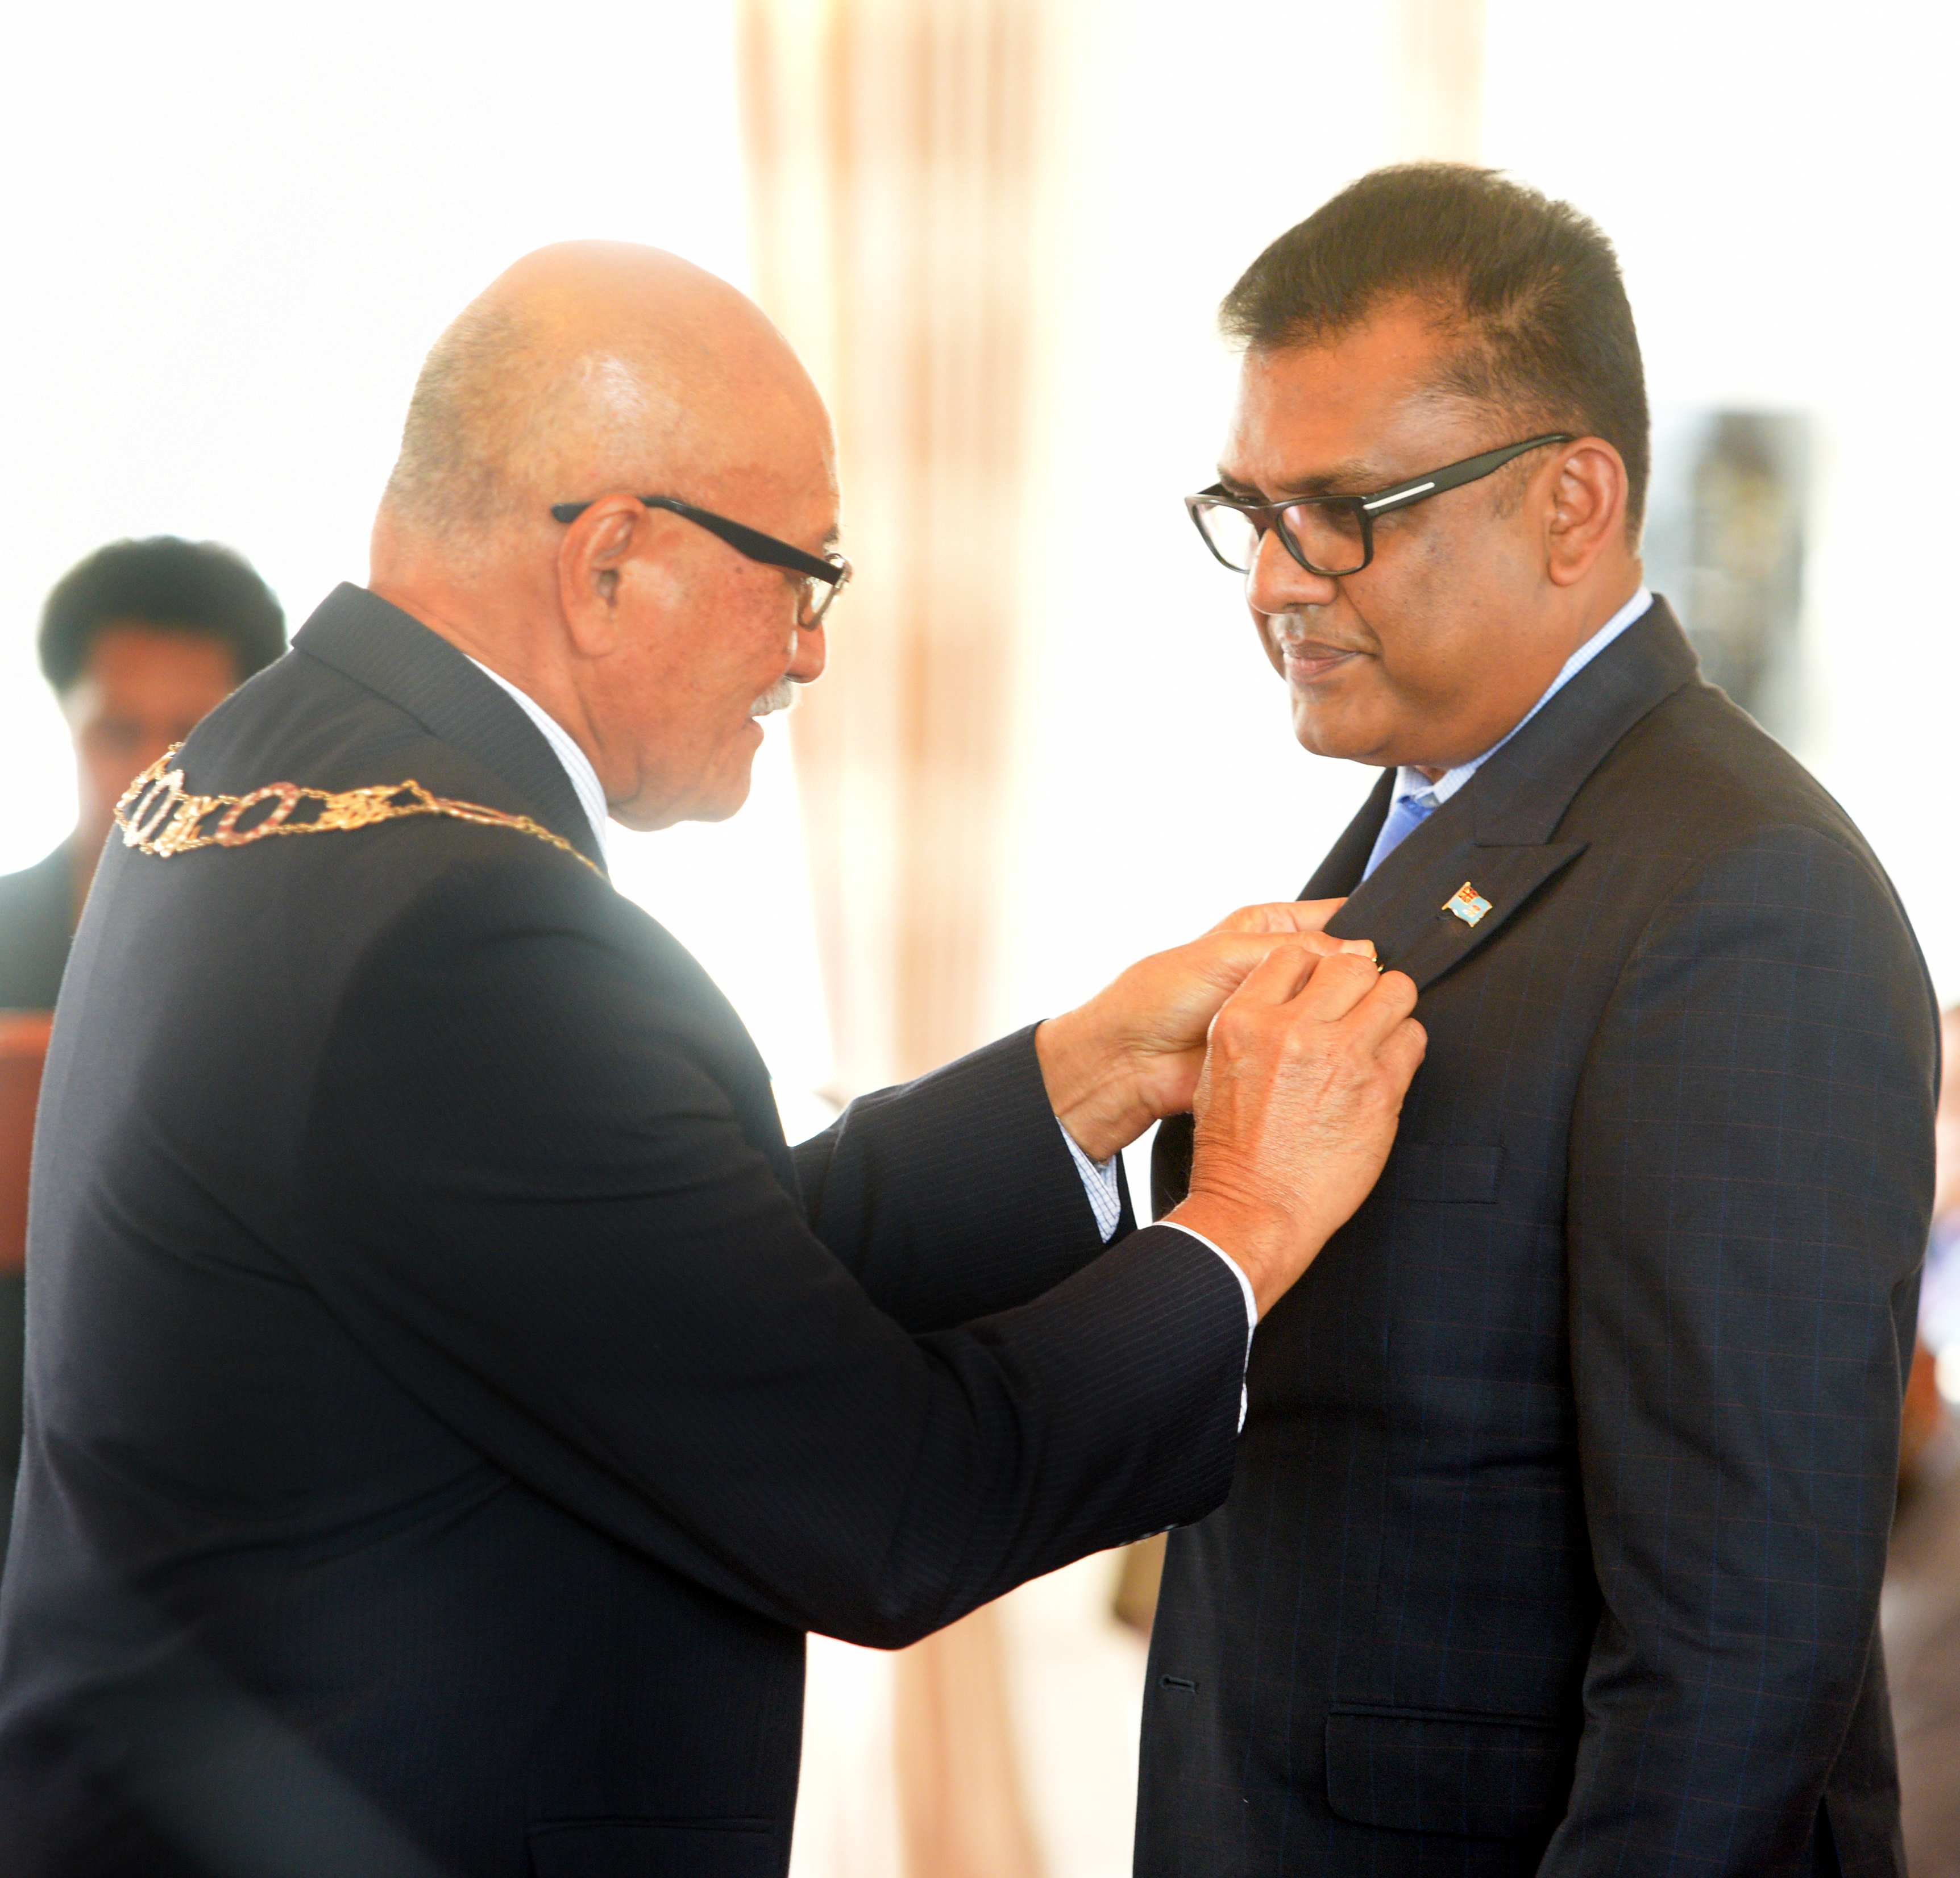 President Awards Yogesh Karan with 50th anniversary of Independence commemorative medal during special investiture ceremony at State House on October 8, 2020. Photo: Ronald Kumar.